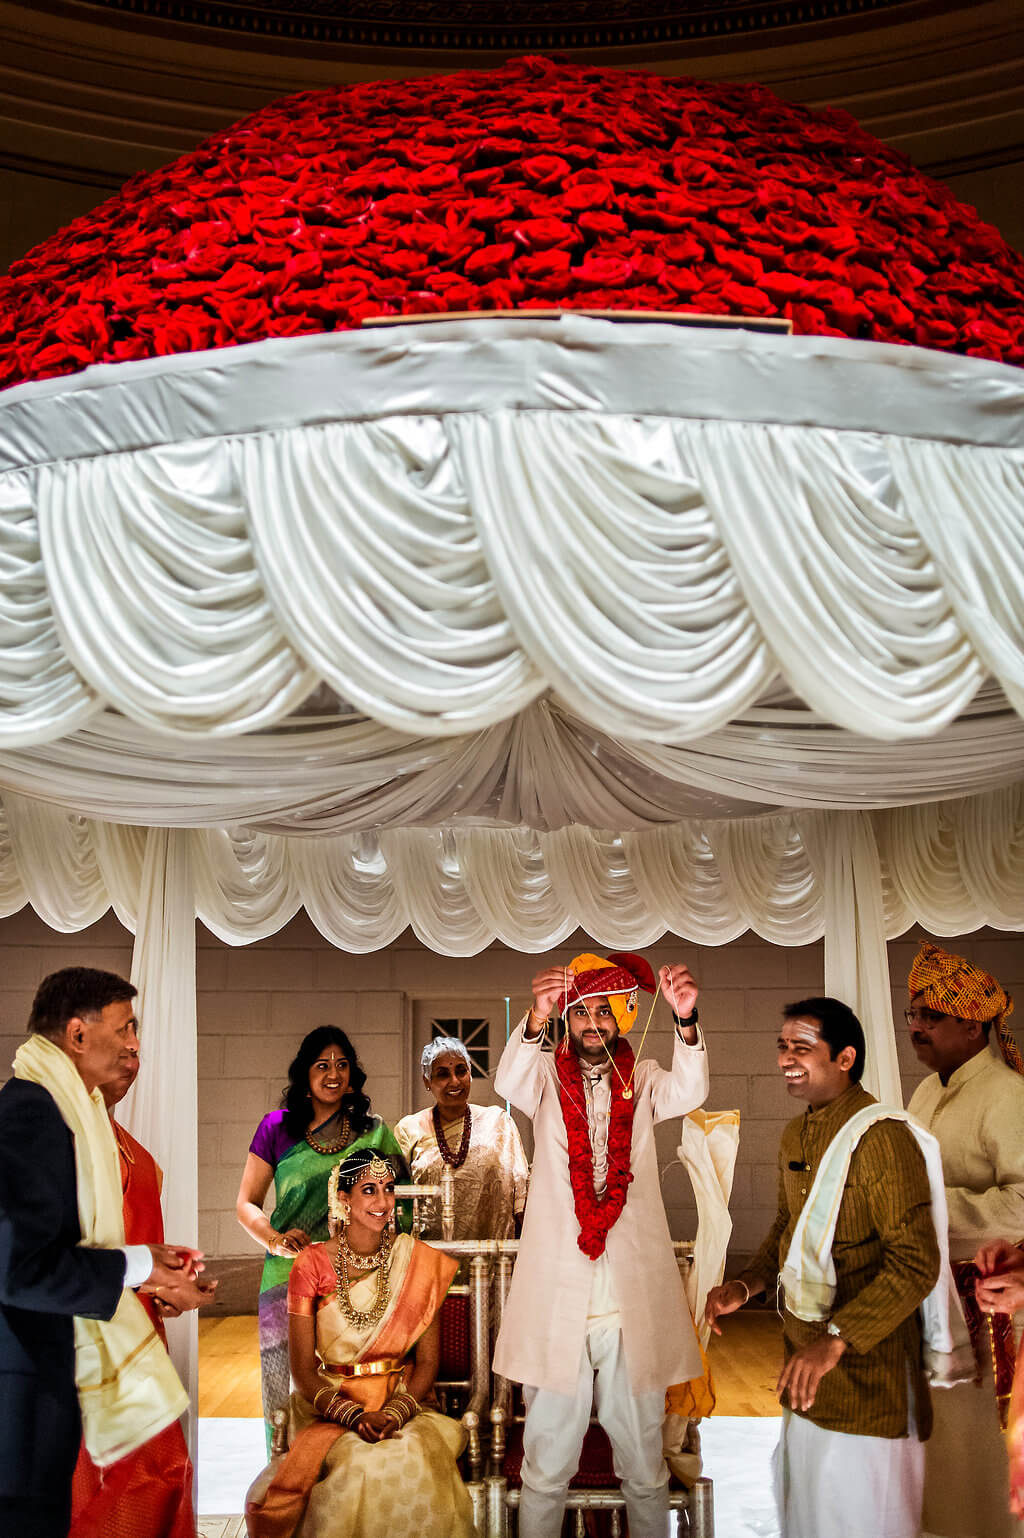 Real Wedding of Kavya and Pranay _ Photography by Davina and Daniel Ecletic fusion Indian American Wedding Planning India Mehndi Reception (4)